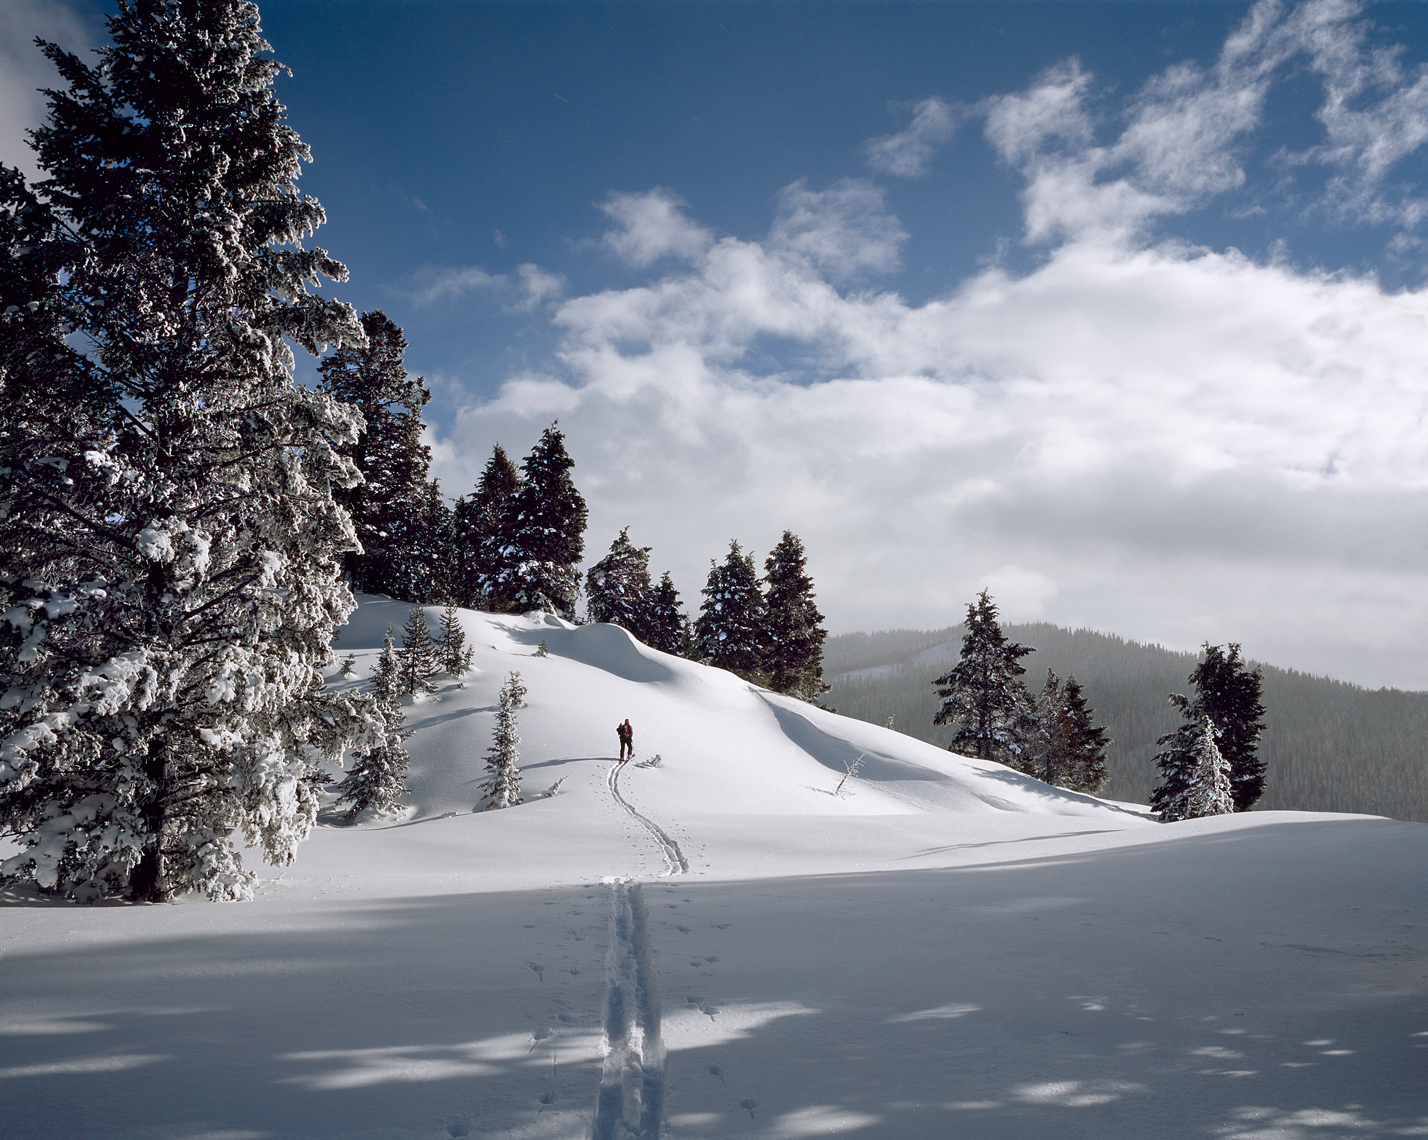 Jon Wyatt Photography - Ski tourer in West Yellowstone,  Montana